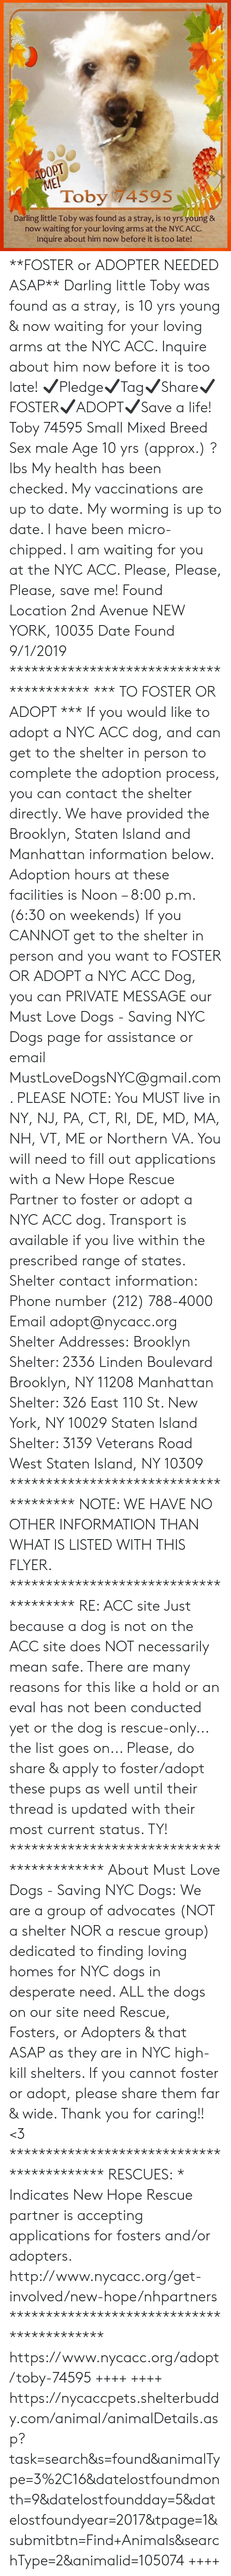 Animals, Desperate, and Dogs: ADOPT  ME!  Toby 74595  Darling little Toby was found as a stray, is 10 yrs young &  now waiting for your loving arms at the NYC ACC.  Inquire about him now before it is too late! **FOSTER or ADOPTER NEEDED ASAP** Darling little Toby was found as a stray, is 10 yrs young & now waiting for your loving arms at the NYC ACC. Inquire about him now before it is too late!  ✔Pledge✔Tag✔Share✔FOSTER✔ADOPT✔Save a life!  Toby 74595 Small Mixed Breed Sex male Age 10 yrs (approx.) ? lbs  My health has been checked.  My vaccinations are up to date. My worming is up to date.  I have been micro-chipped.   I am waiting for you at the NYC ACC.  Please, Please, Please, save me!  Found Location  2nd Avenue NEW YORK, 10035 Date Found 9/1/2019  **************************************** *** TO FOSTER OR ADOPT ***   If you would like to adopt a NYC ACC dog, and can get to the shelter in person to complete the adoption process, you can contact the shelter directly. We have provided the Brooklyn, Staten Island and Manhattan information below. Adoption hours at these facilities is Noon – 8:00 p.m. (6:30 on weekends)  If you CANNOT get to the shelter in person and you want to FOSTER OR ADOPT a NYC ACC Dog, you can PRIVATE MESSAGE our Must Love Dogs - Saving NYC Dogs page for assistance or email MustLoveDogsNYC@gmail.com.   PLEASE NOTE: You MUST live in NY, NJ, PA, CT, RI, DE, MD, MA, NH, VT, ME or Northern VA. You will need to fill out applications with a New Hope Rescue Partner to foster or adopt a NYC ACC dog. Transport is available if you live within the prescribed range of states.  Shelter contact information: Phone number (212) 788-4000 Email adopt@nycacc.org  Shelter Addresses: Brooklyn Shelter: 2336 Linden Boulevard Brooklyn, NY 11208 Manhattan Shelter: 326 East 110 St. New York, NY 10029 Staten Island Shelter: 3139 Veterans Road West Staten Island, NY 10309 **************************************  NOTE: WE HAVE NO OTHER INFORMATION THAN WHAT IS LISTED WITH T